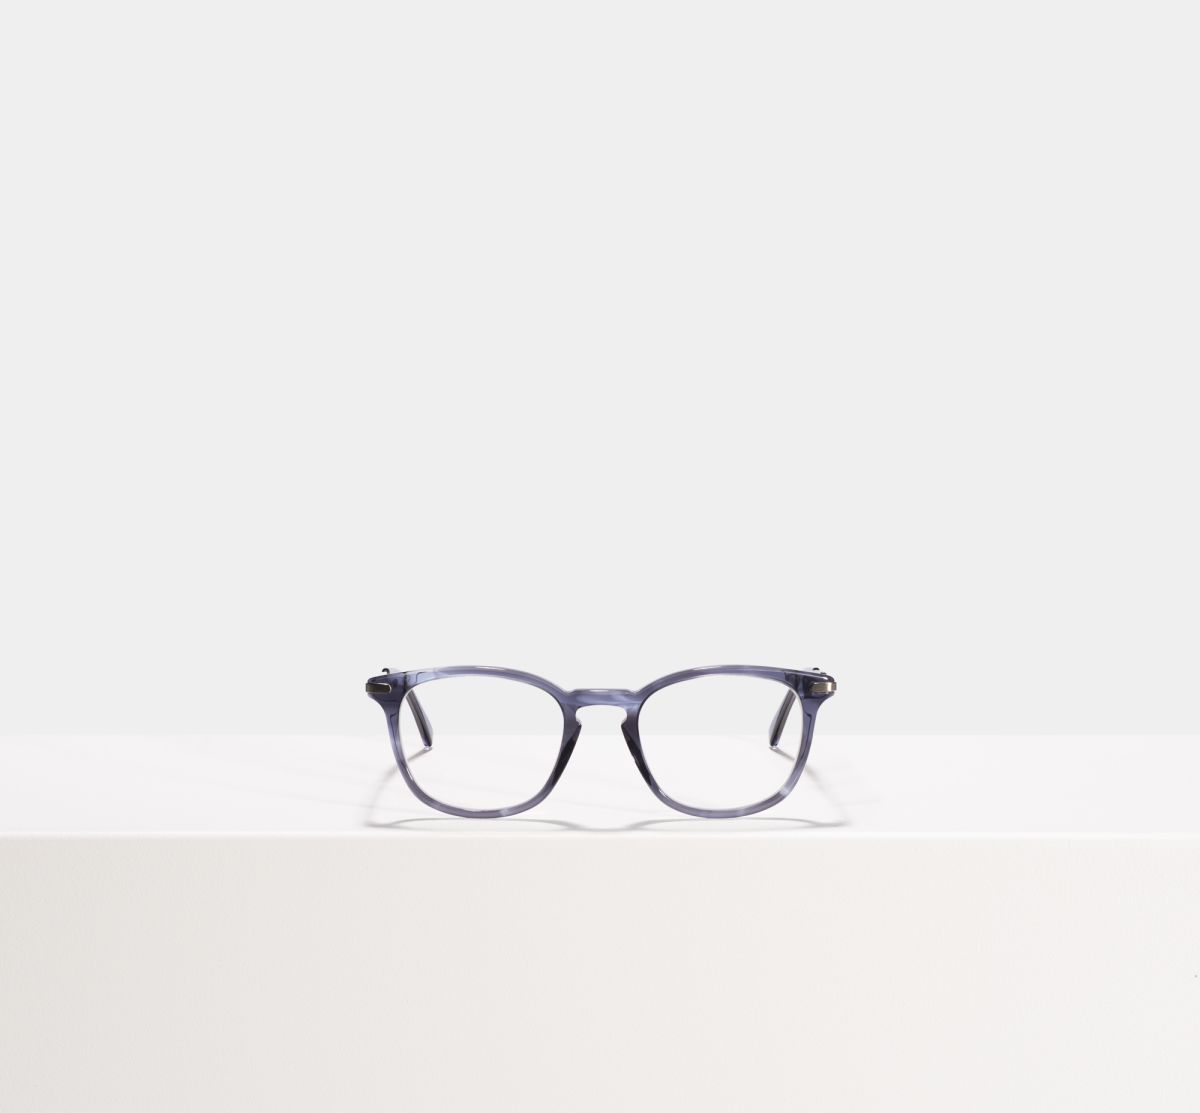 Dylan vierkant metal,combi glasses in Monsoon by Ace & Tate